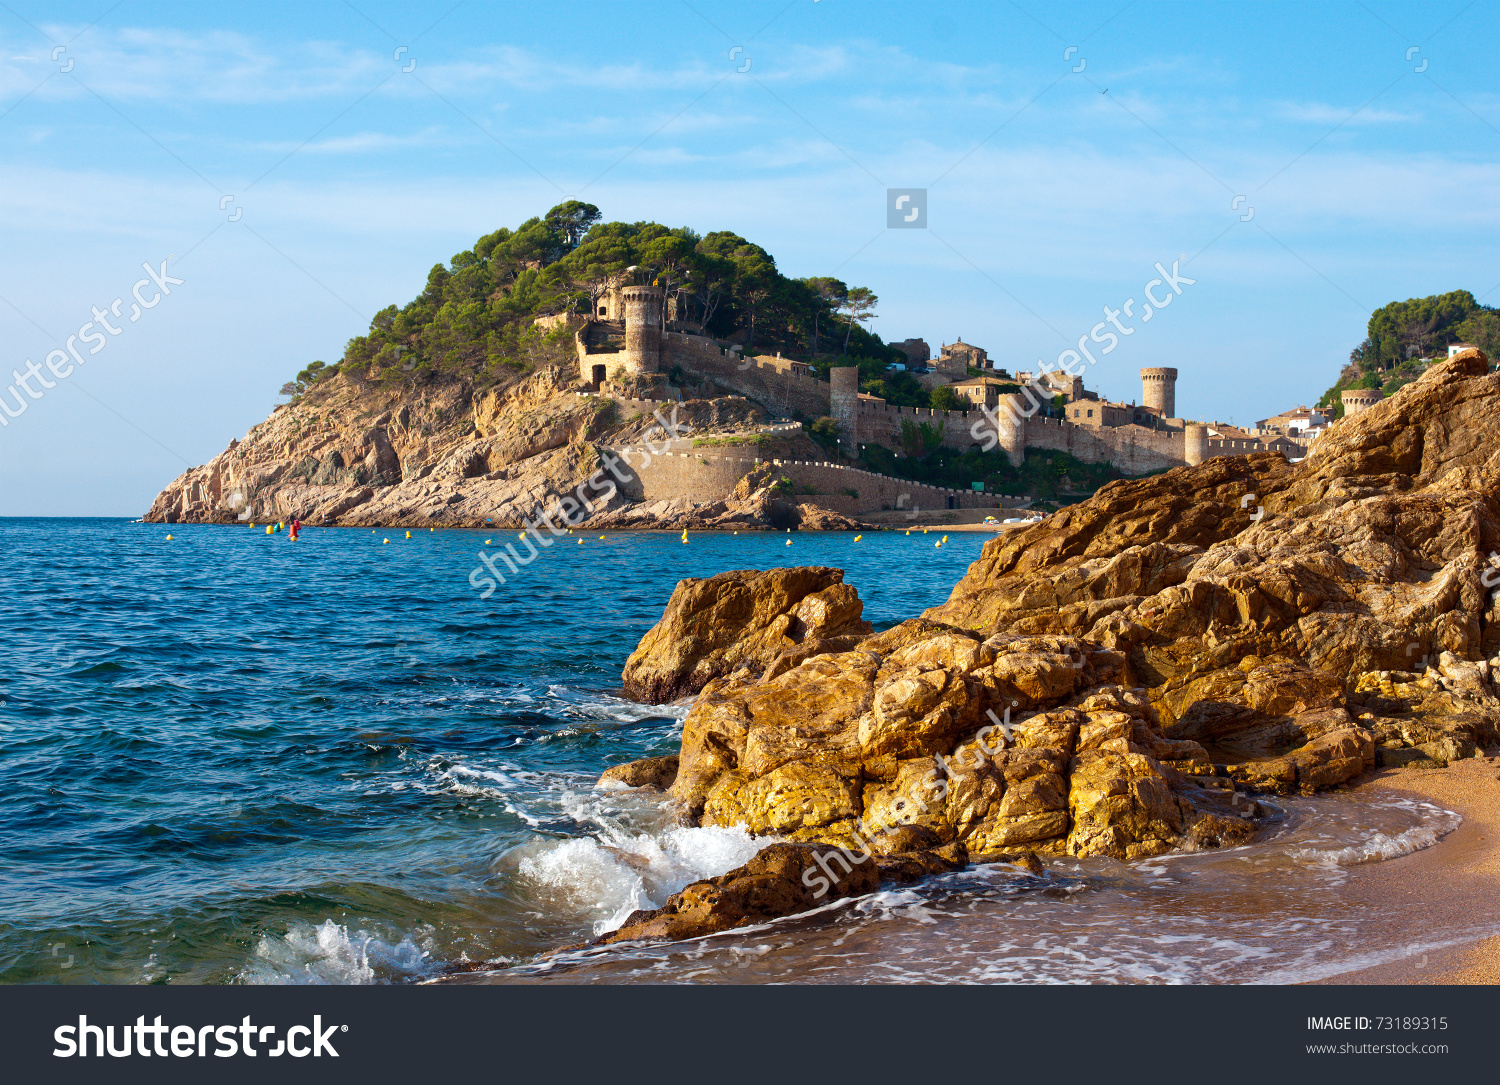 Medieval Castle In Tossa De Mar At Sunrise, Costa Brava, Spain.